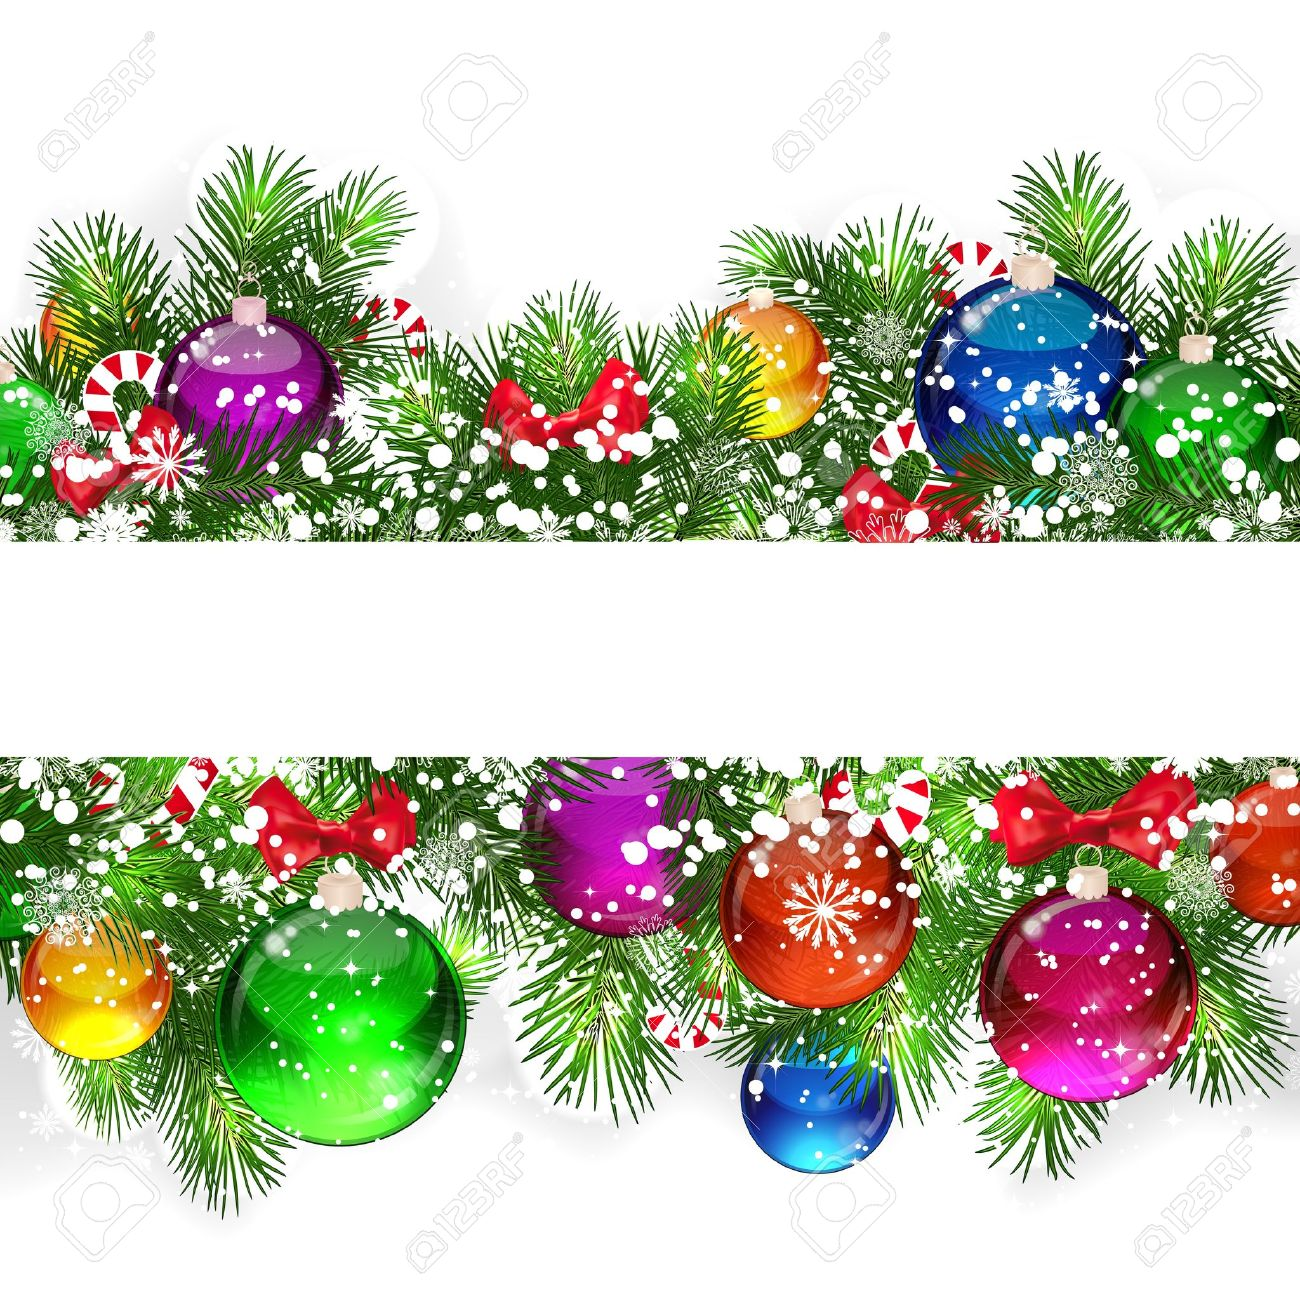 Christmas background with snow-covered branches of Christmas tree, decorated with candies and balloons. Stock Vector - 15405954